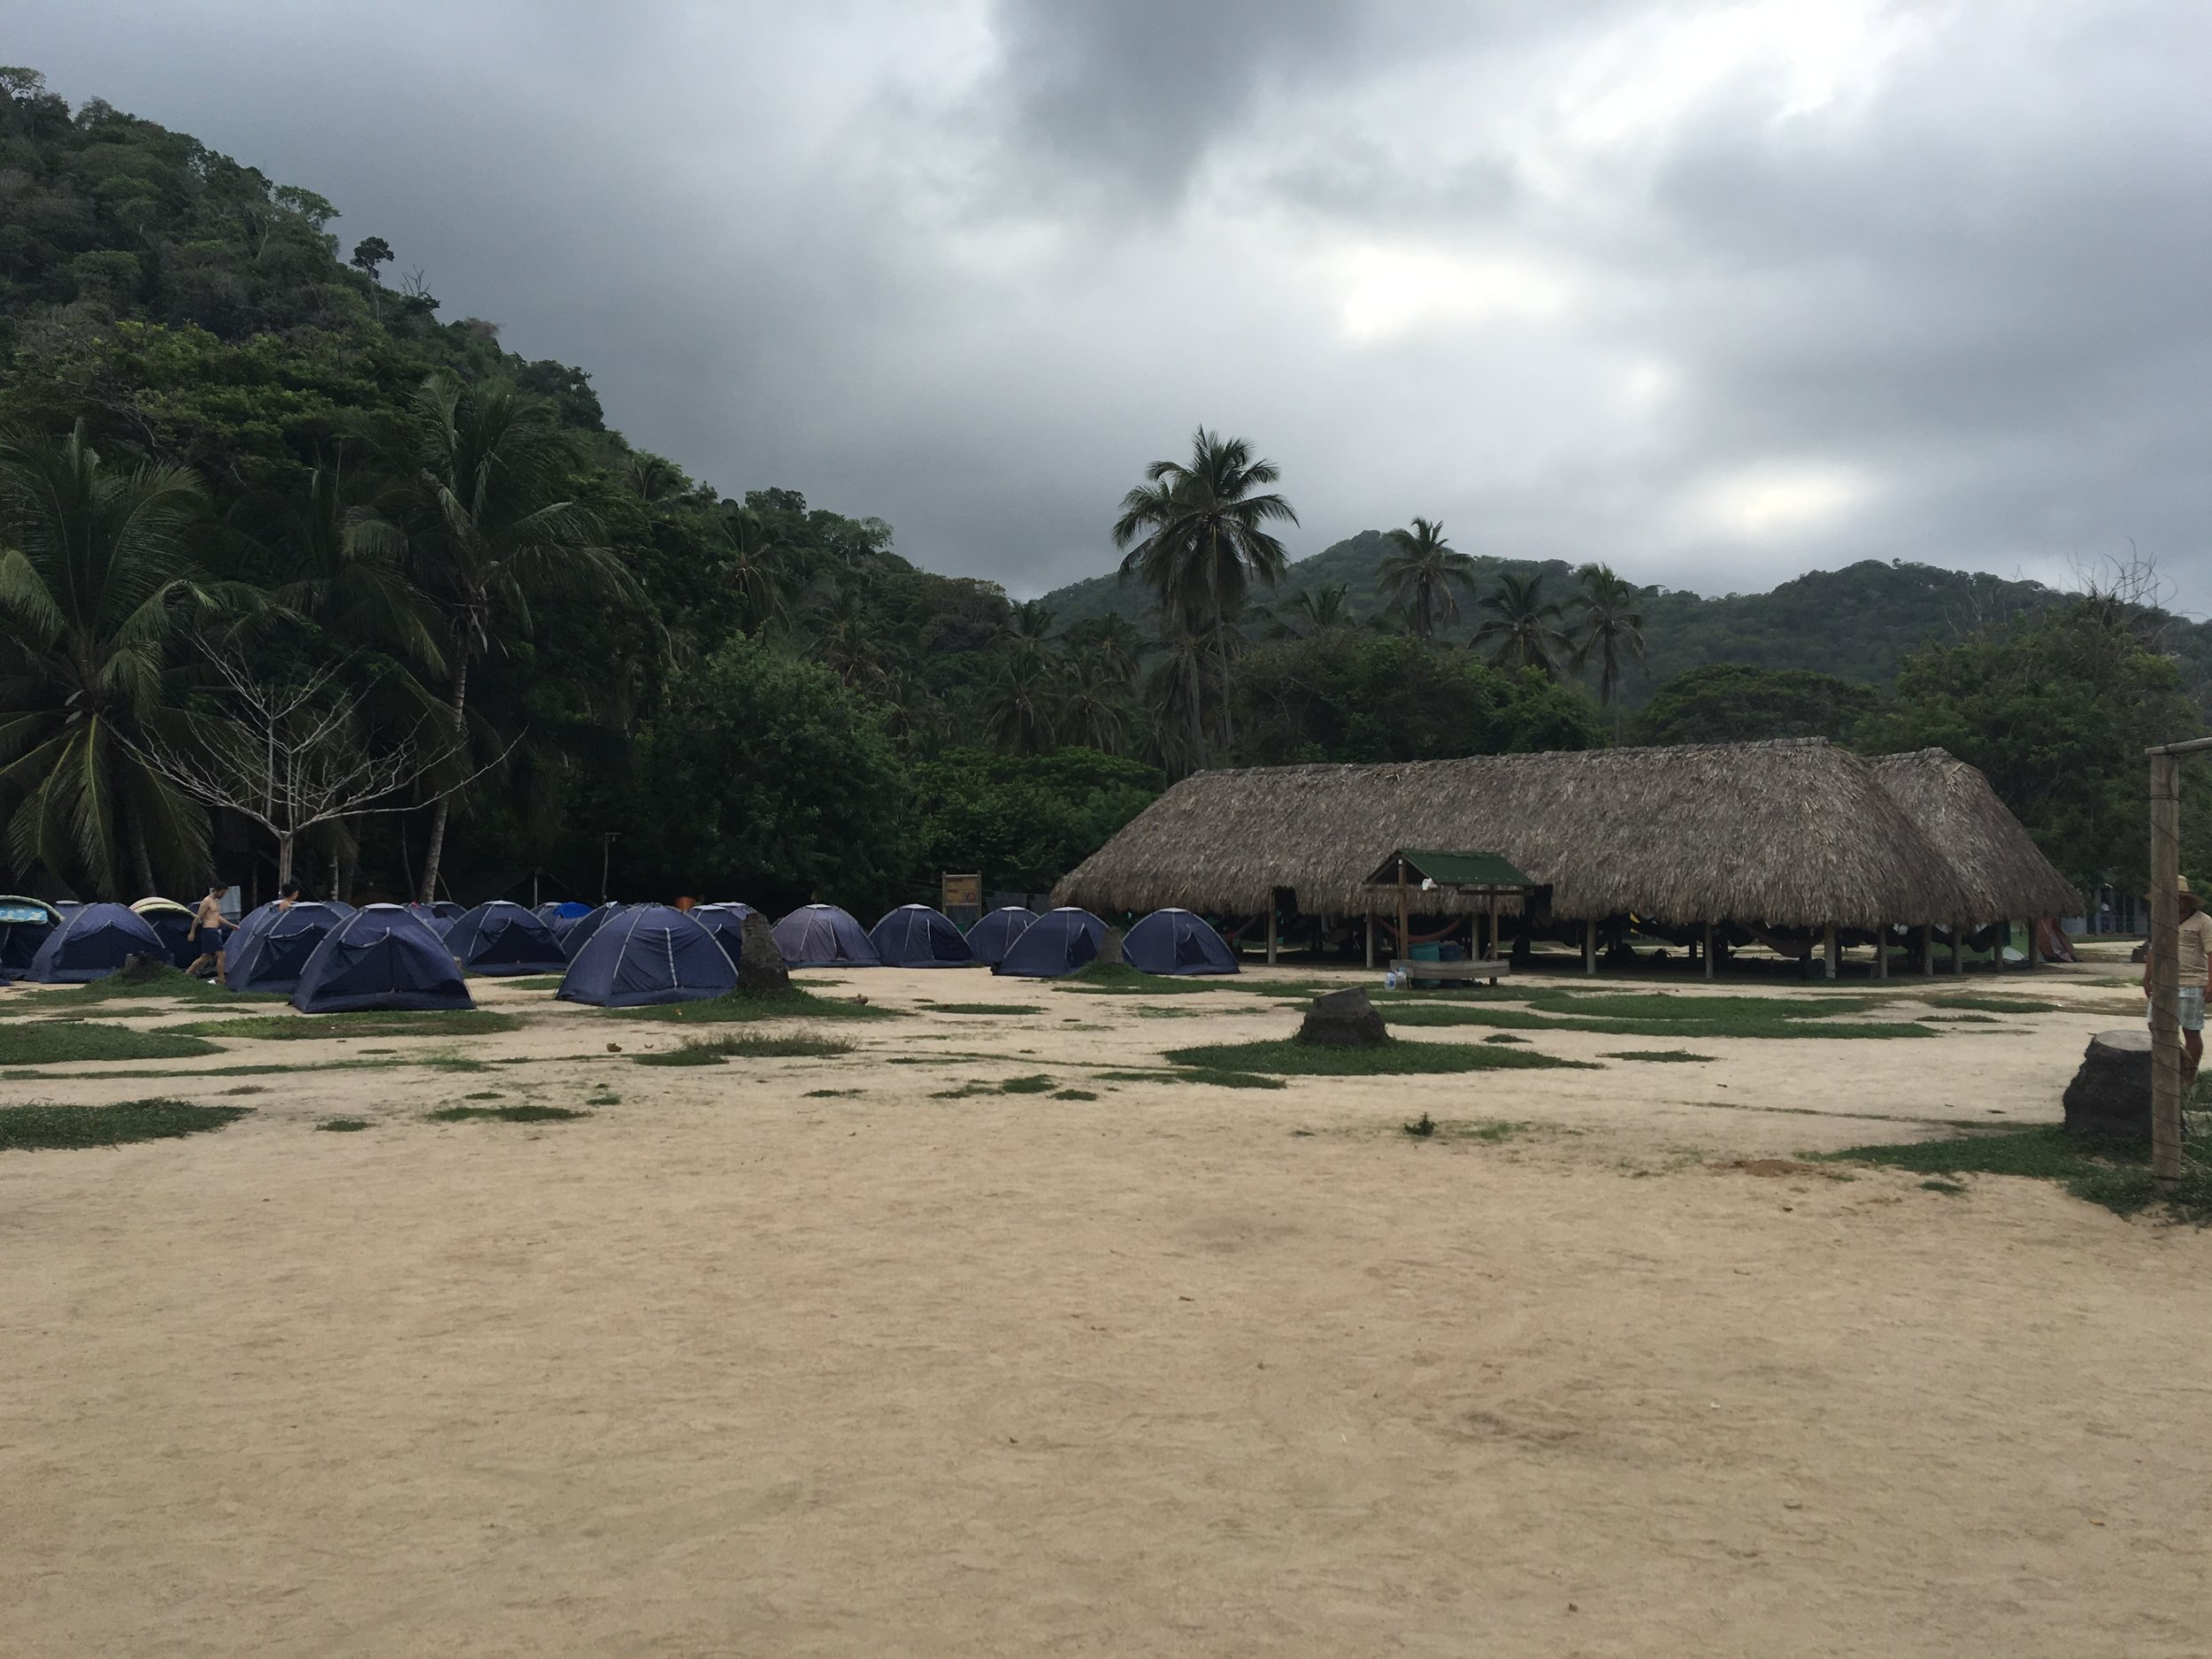 These are the tents inside Tayrona Park. Under the hut is where all of the hammocks are. Just the cold hard facts here people.